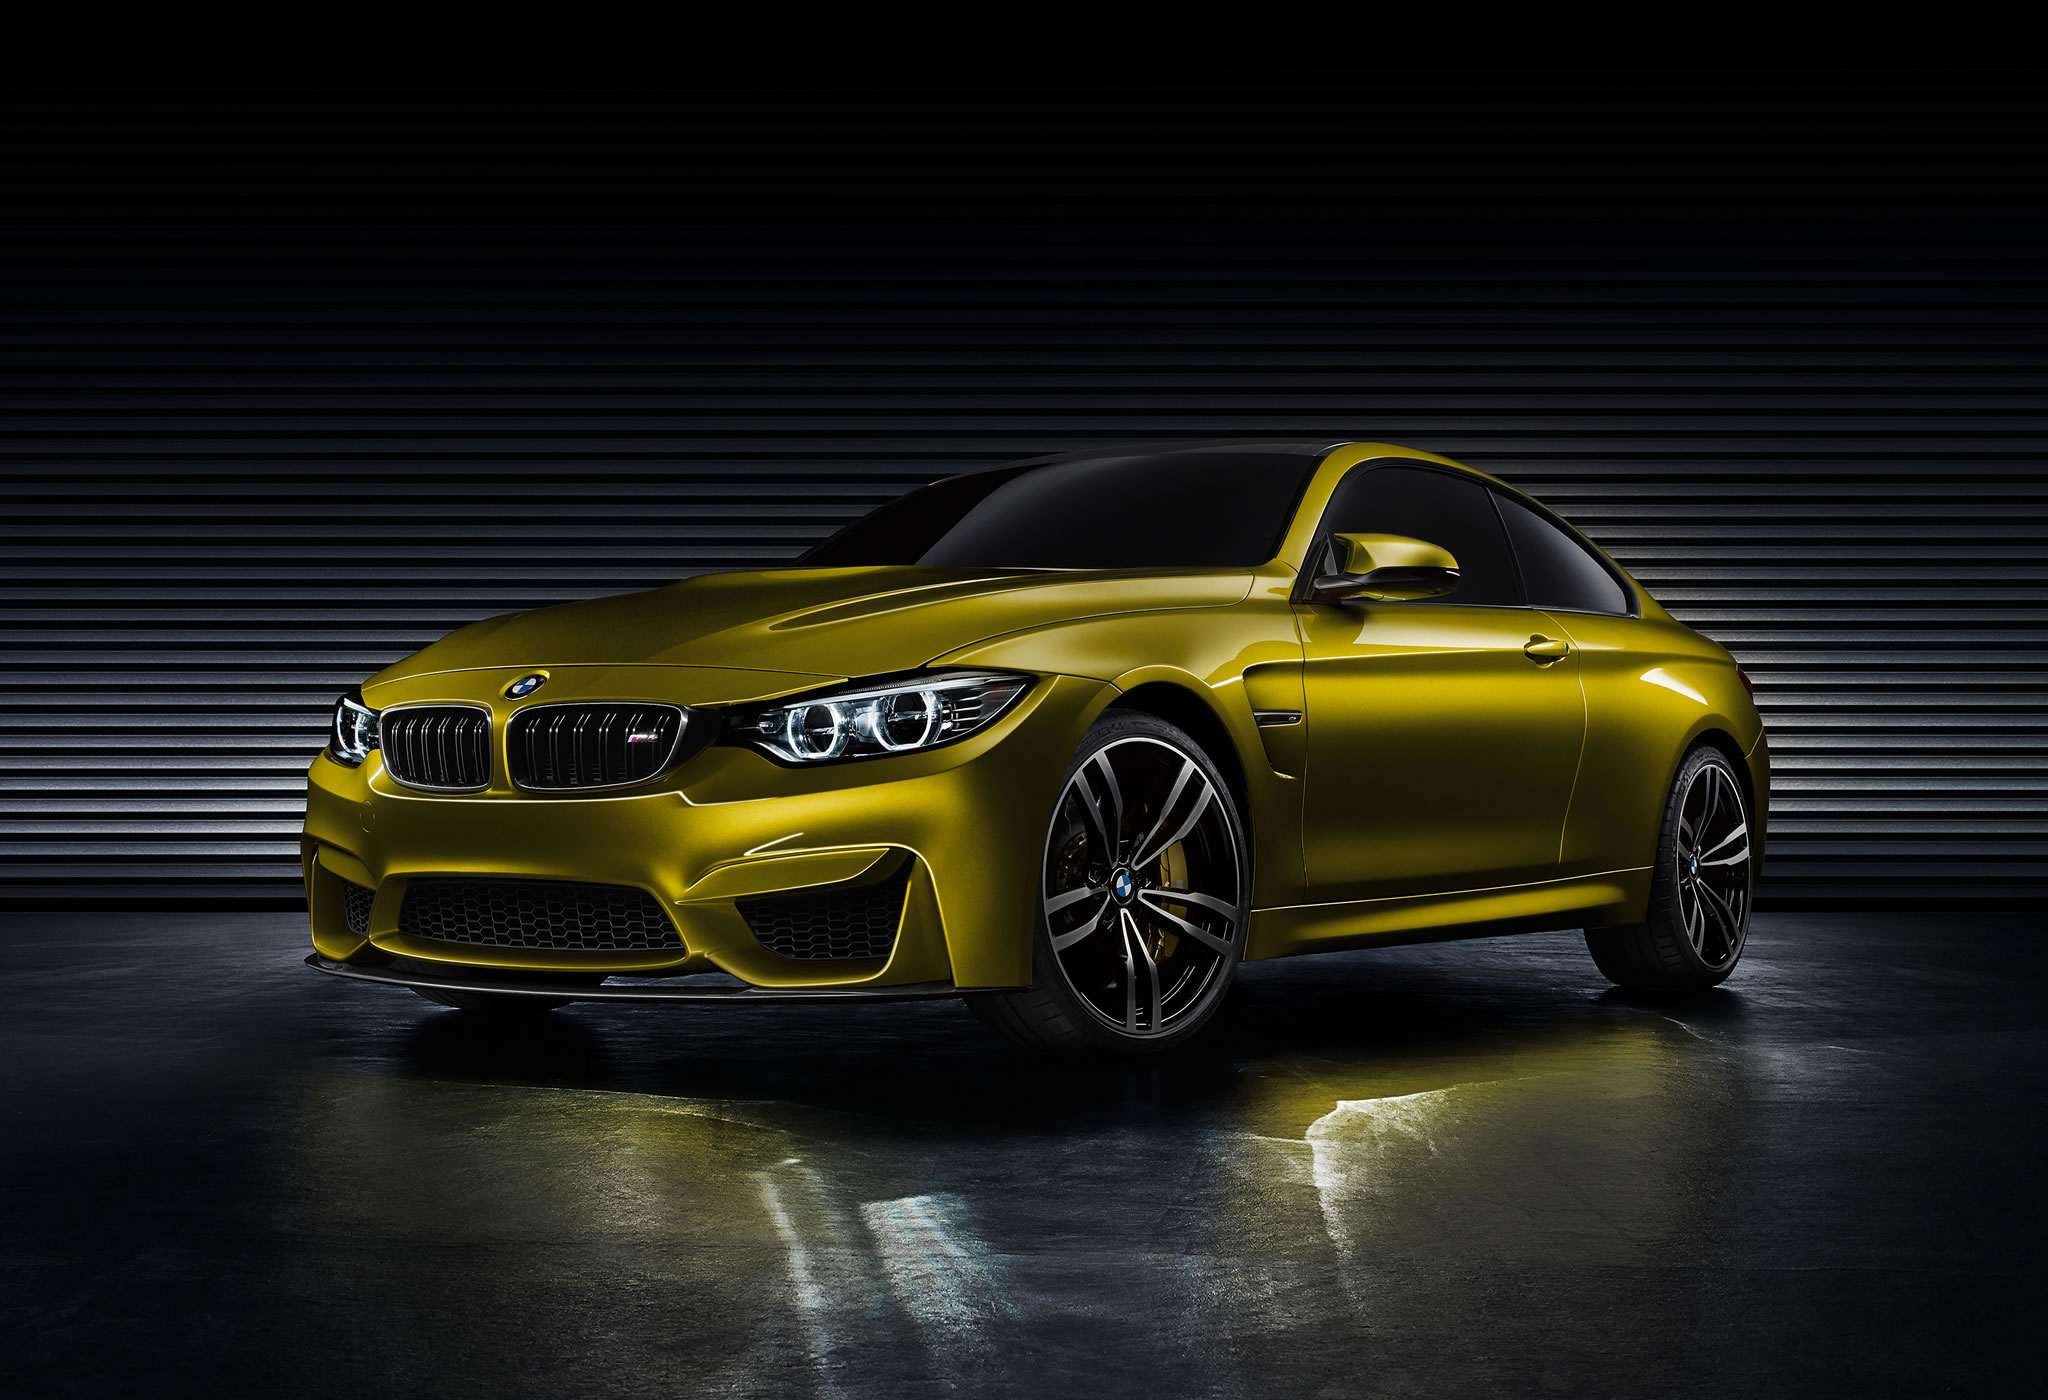 BMW M Coupe Concept Photos Specs And Review RS - 2013 bmw m4